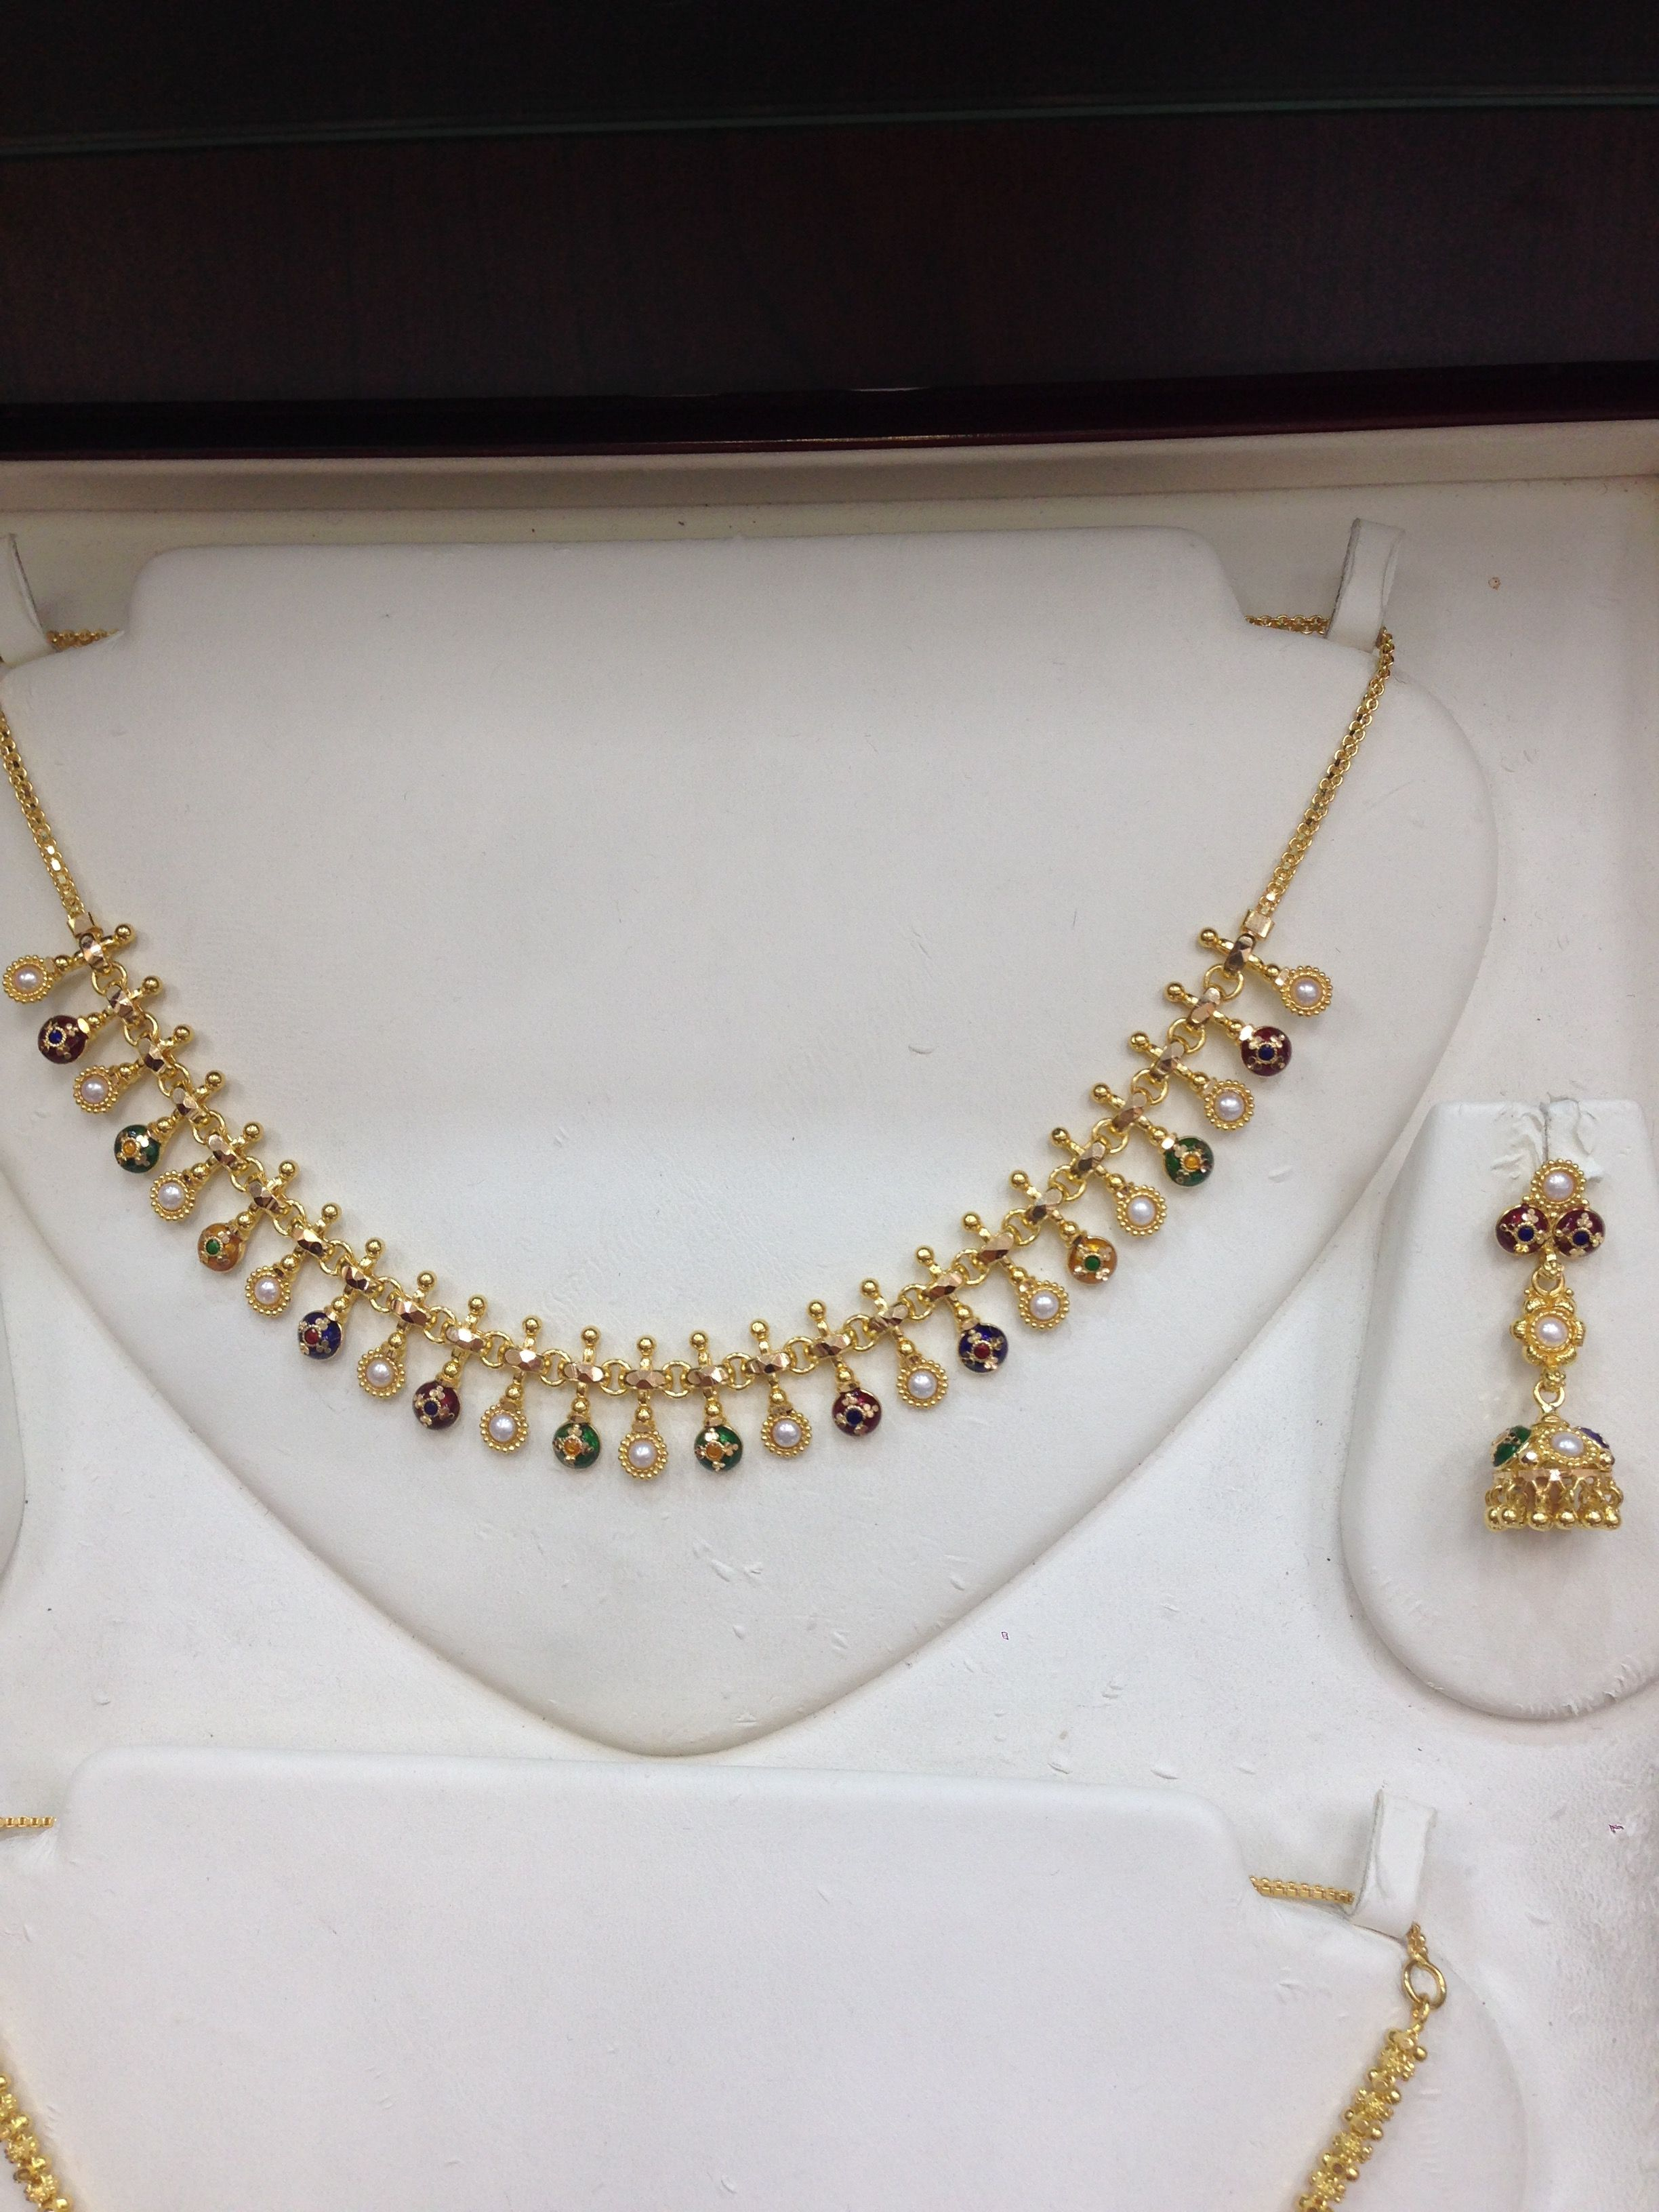 22kt Set With Pearls And Meena Gold Jewelry Fashion Black Beaded Jewelry Gold Necklace Designs